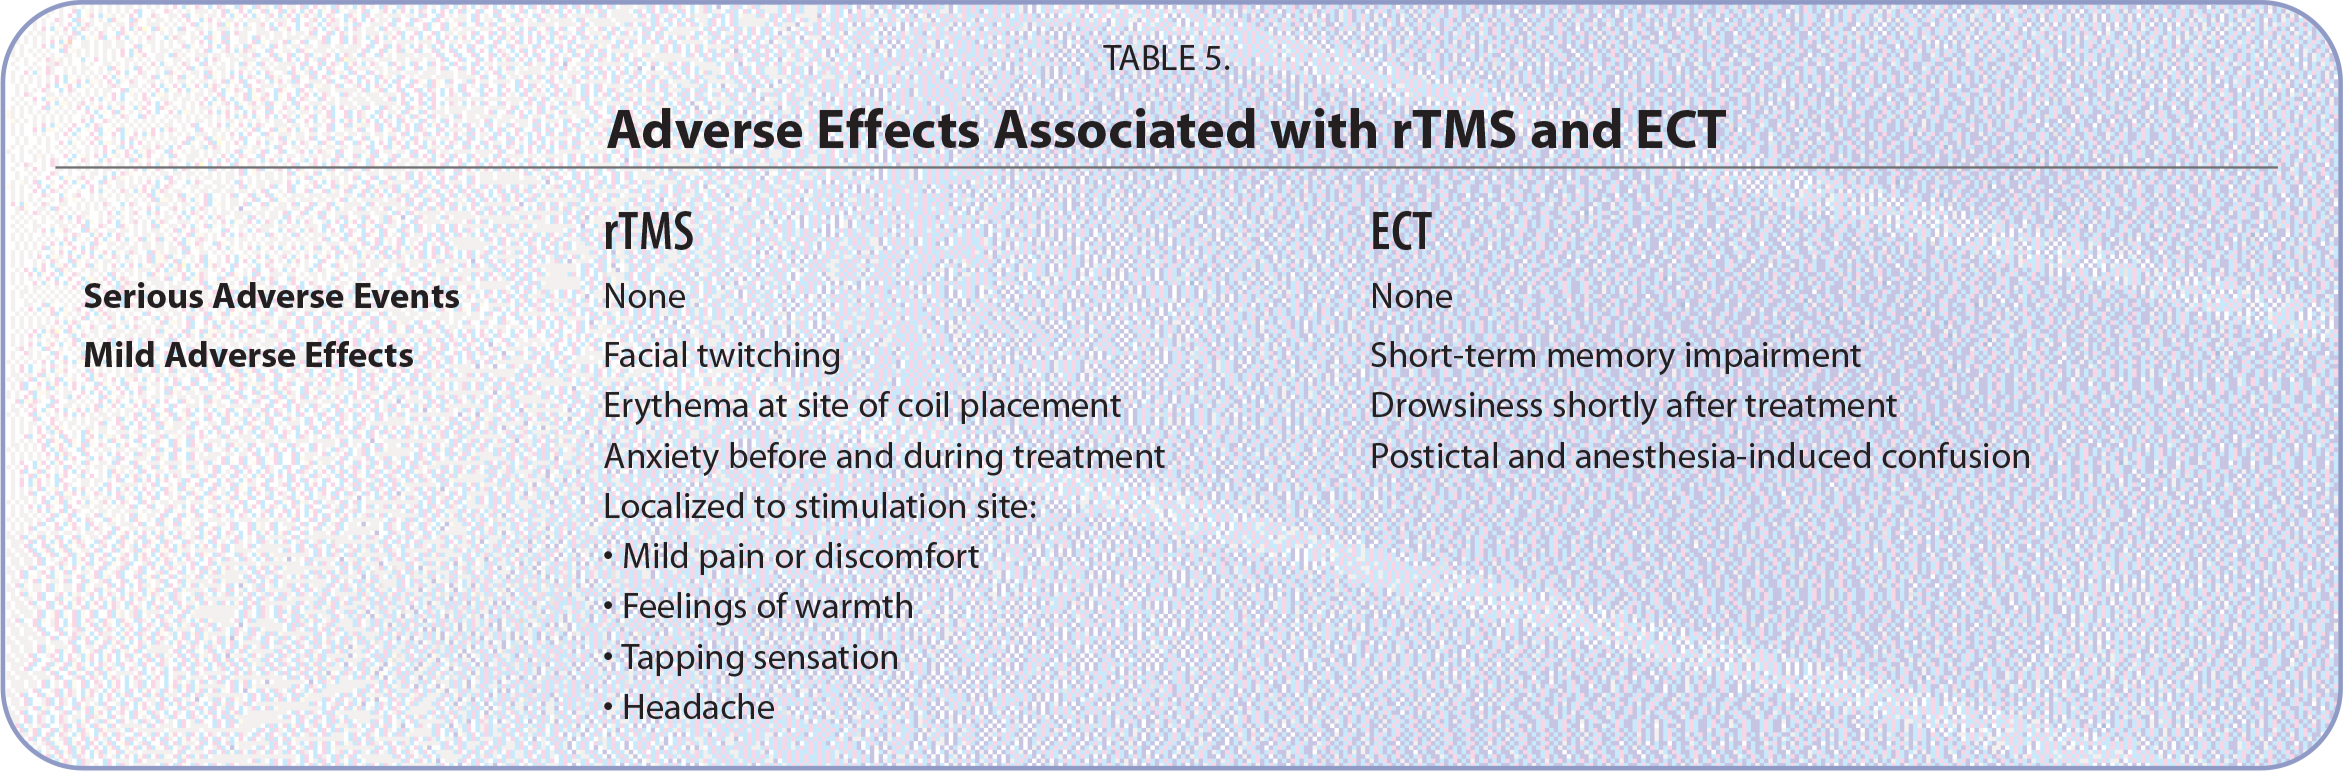 Adverse Effects Associated with rTMS and ECT